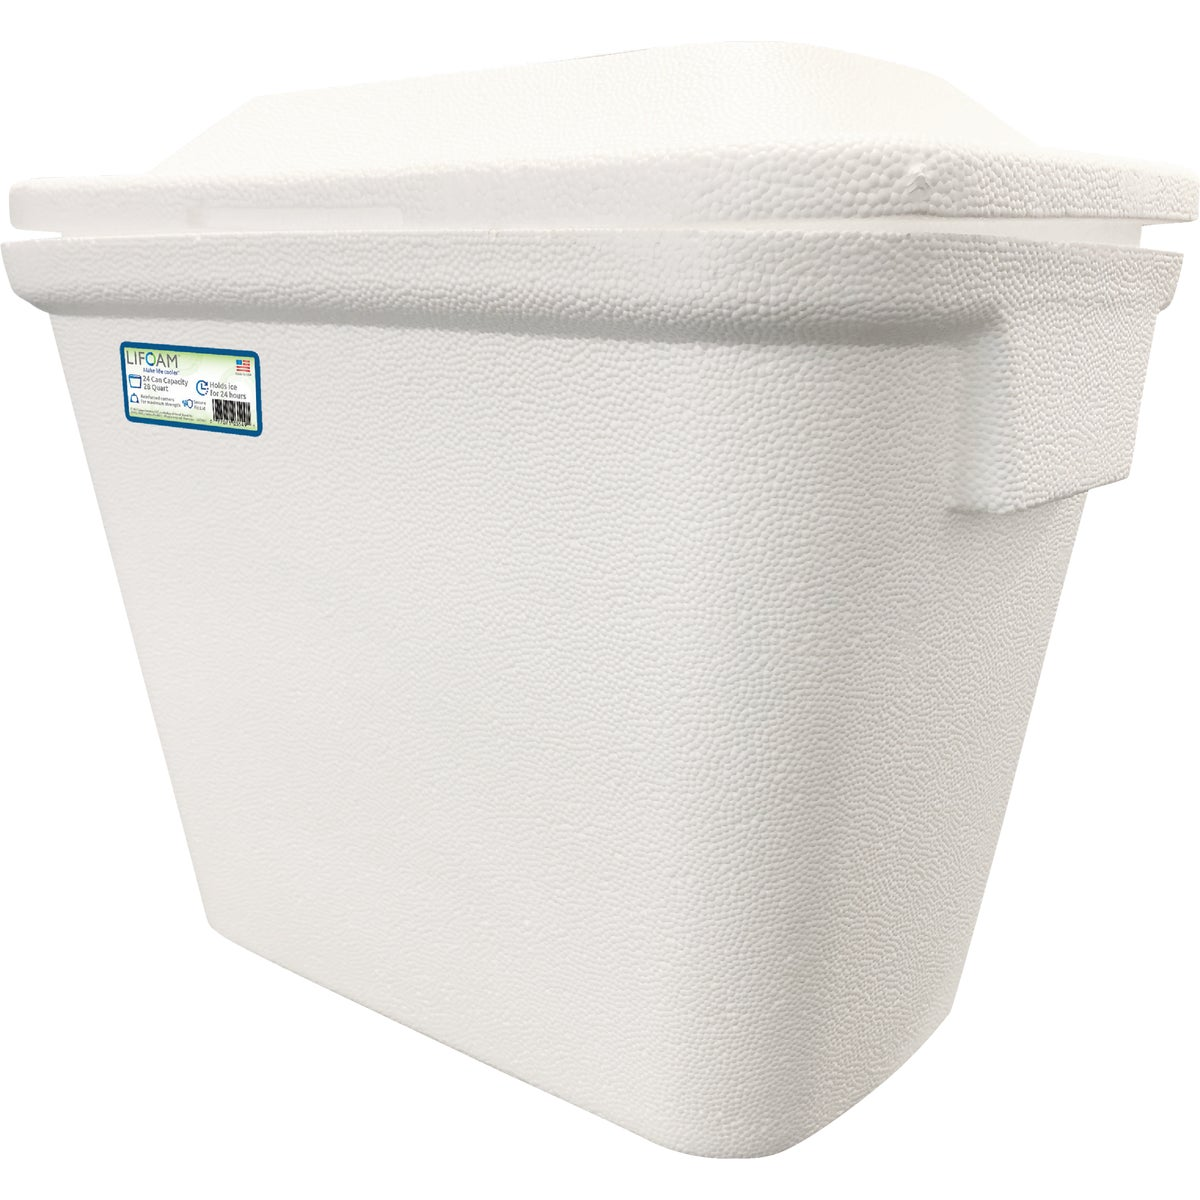 30QT FOAM COOLER - 3542 by Lifoam Div Life Like